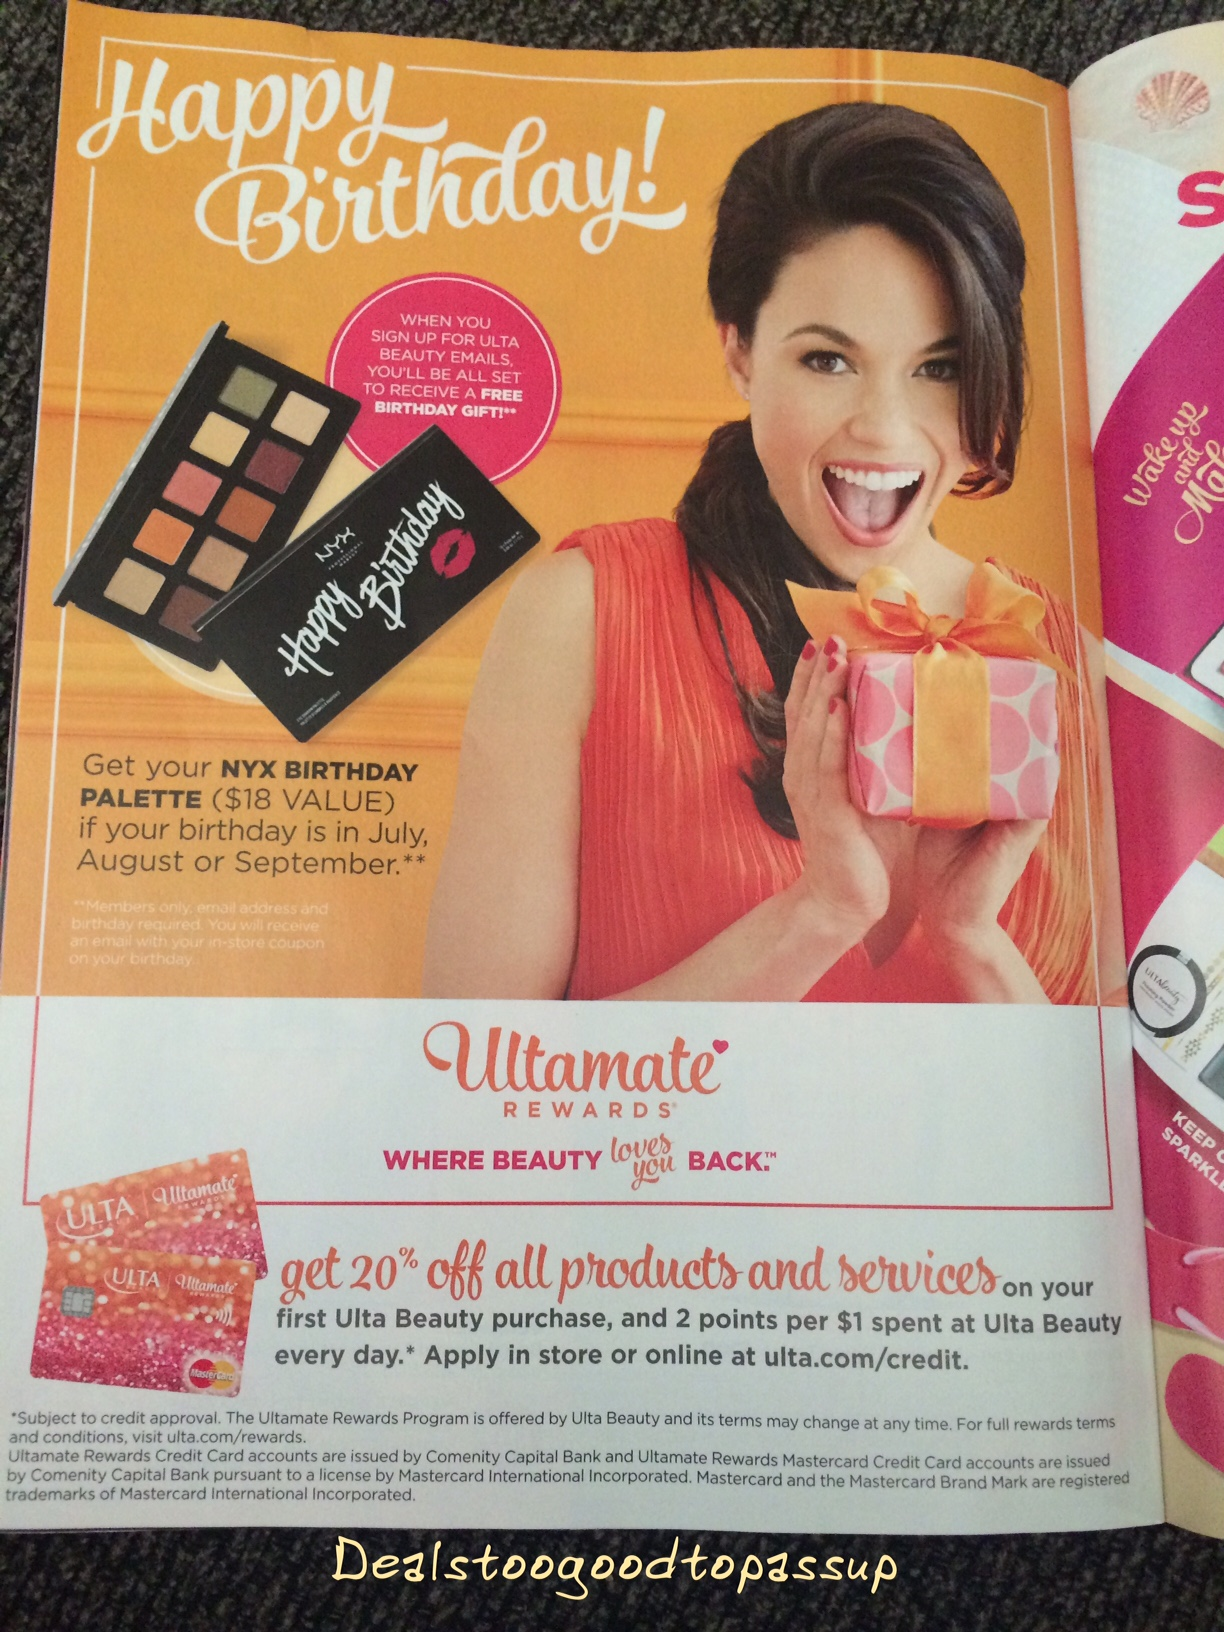 The Ulta 2017 Birthday Gift Changes Each Quarter | Deals Too Good ...